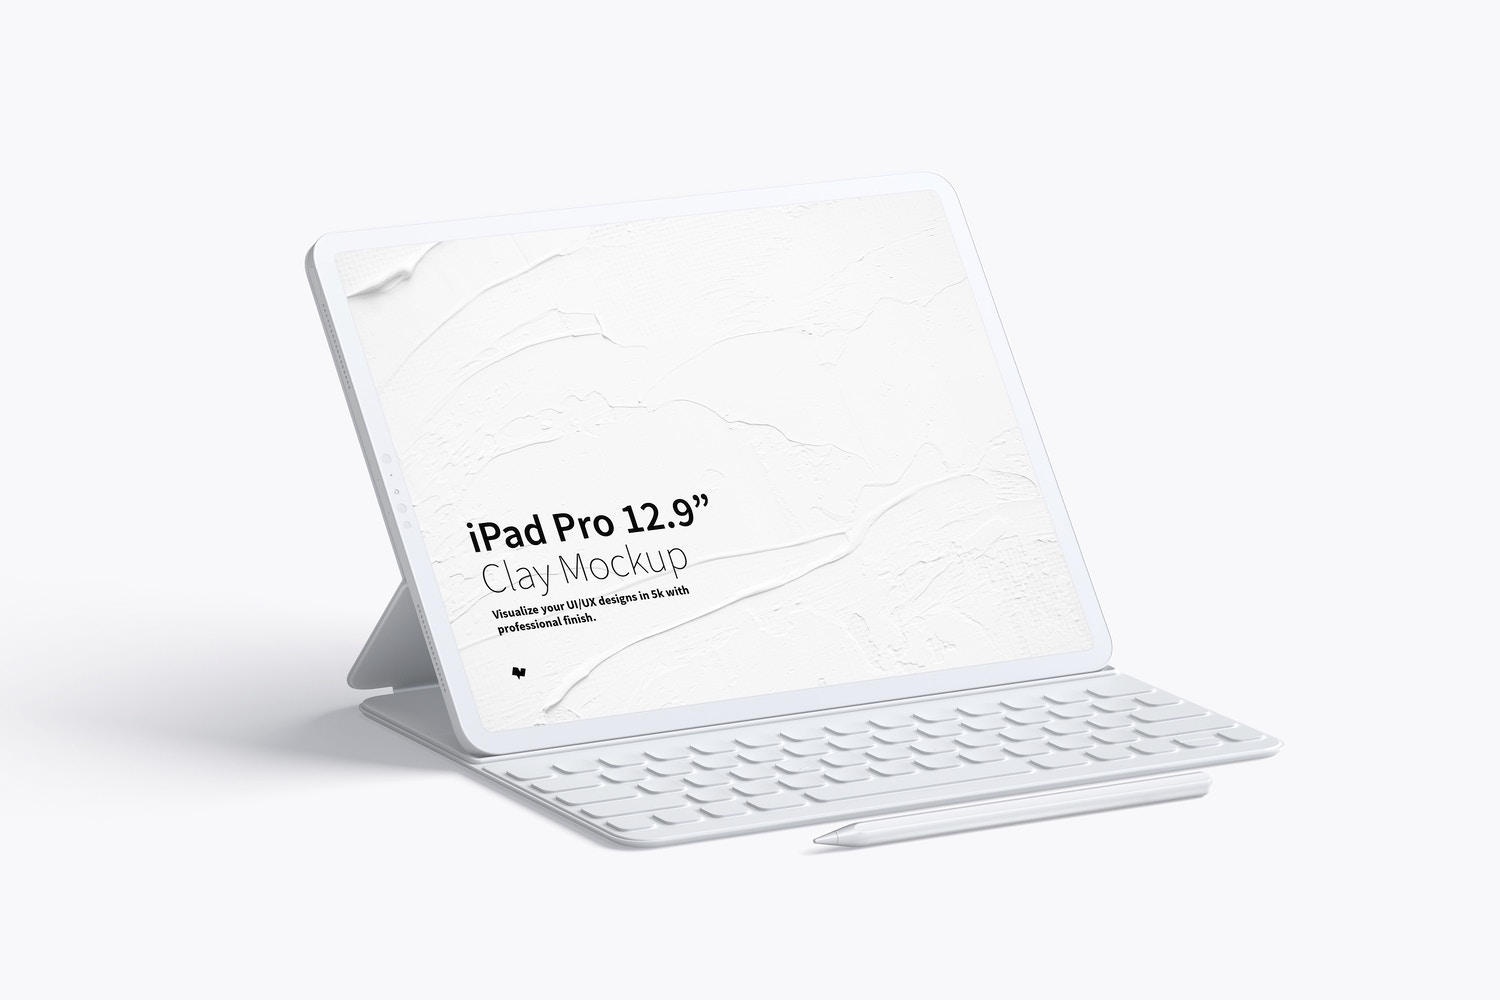 "Clay iPad Pro 12.9"" Mockup, With Key Board by Original Mockups on Original Mockups"